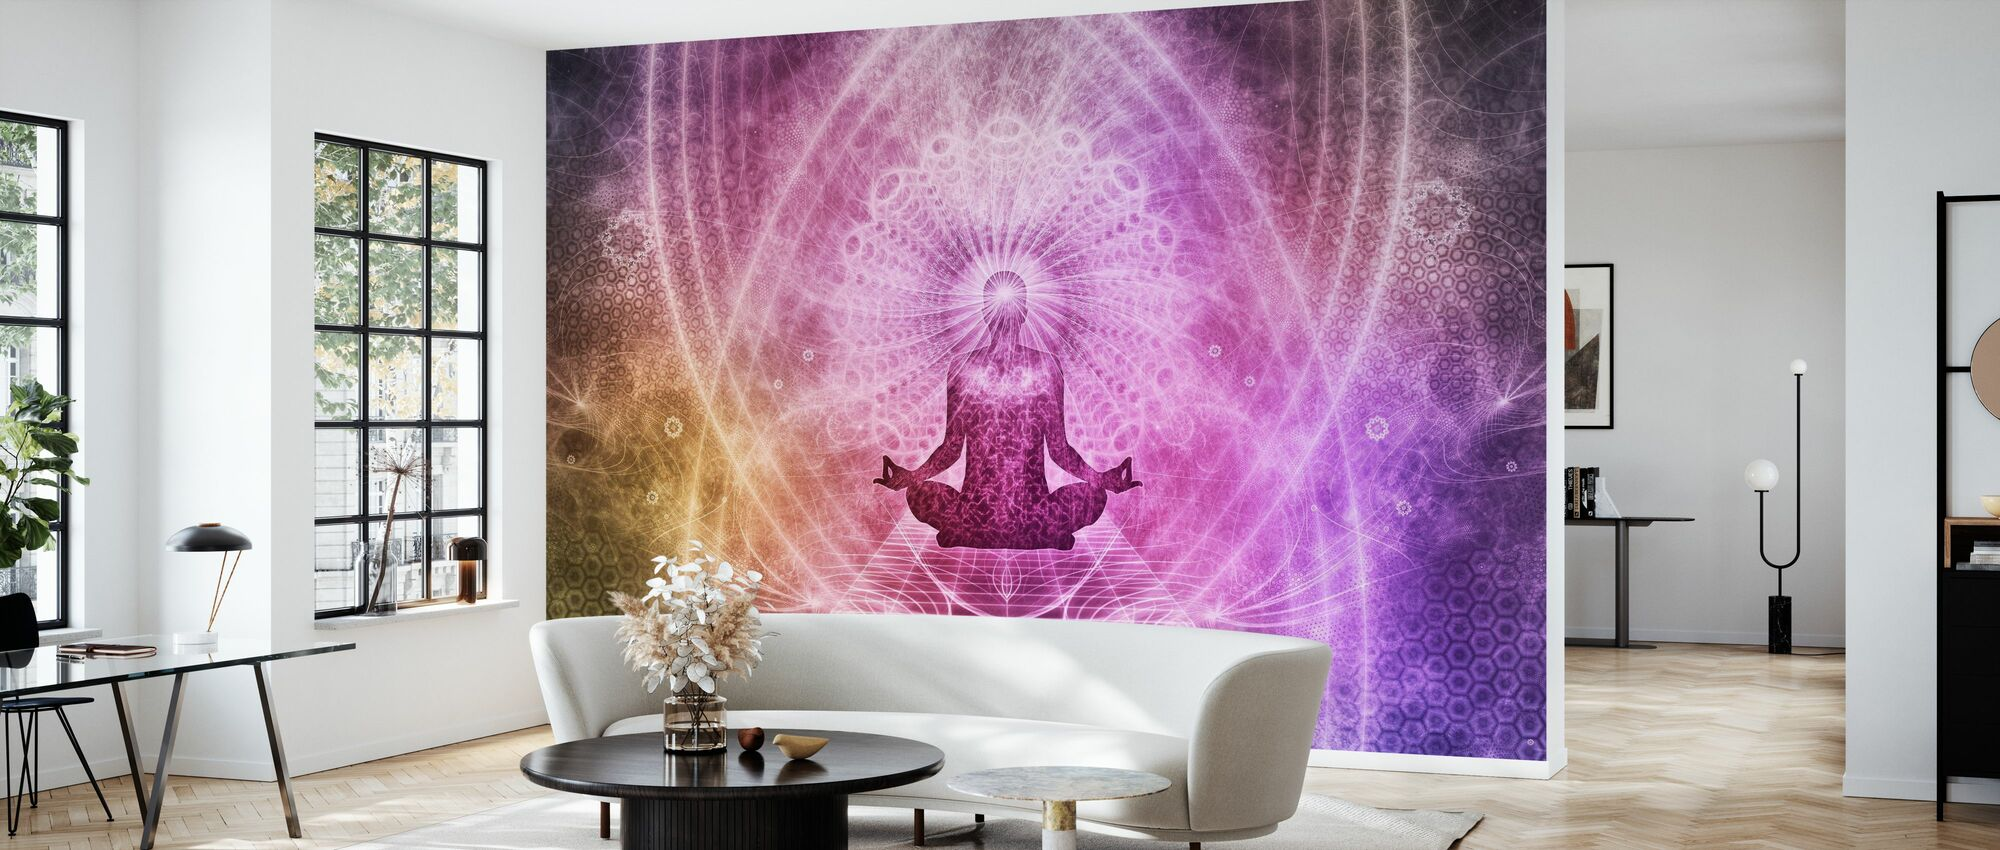 Spiritual Meditation - Wallpaper - Living Room